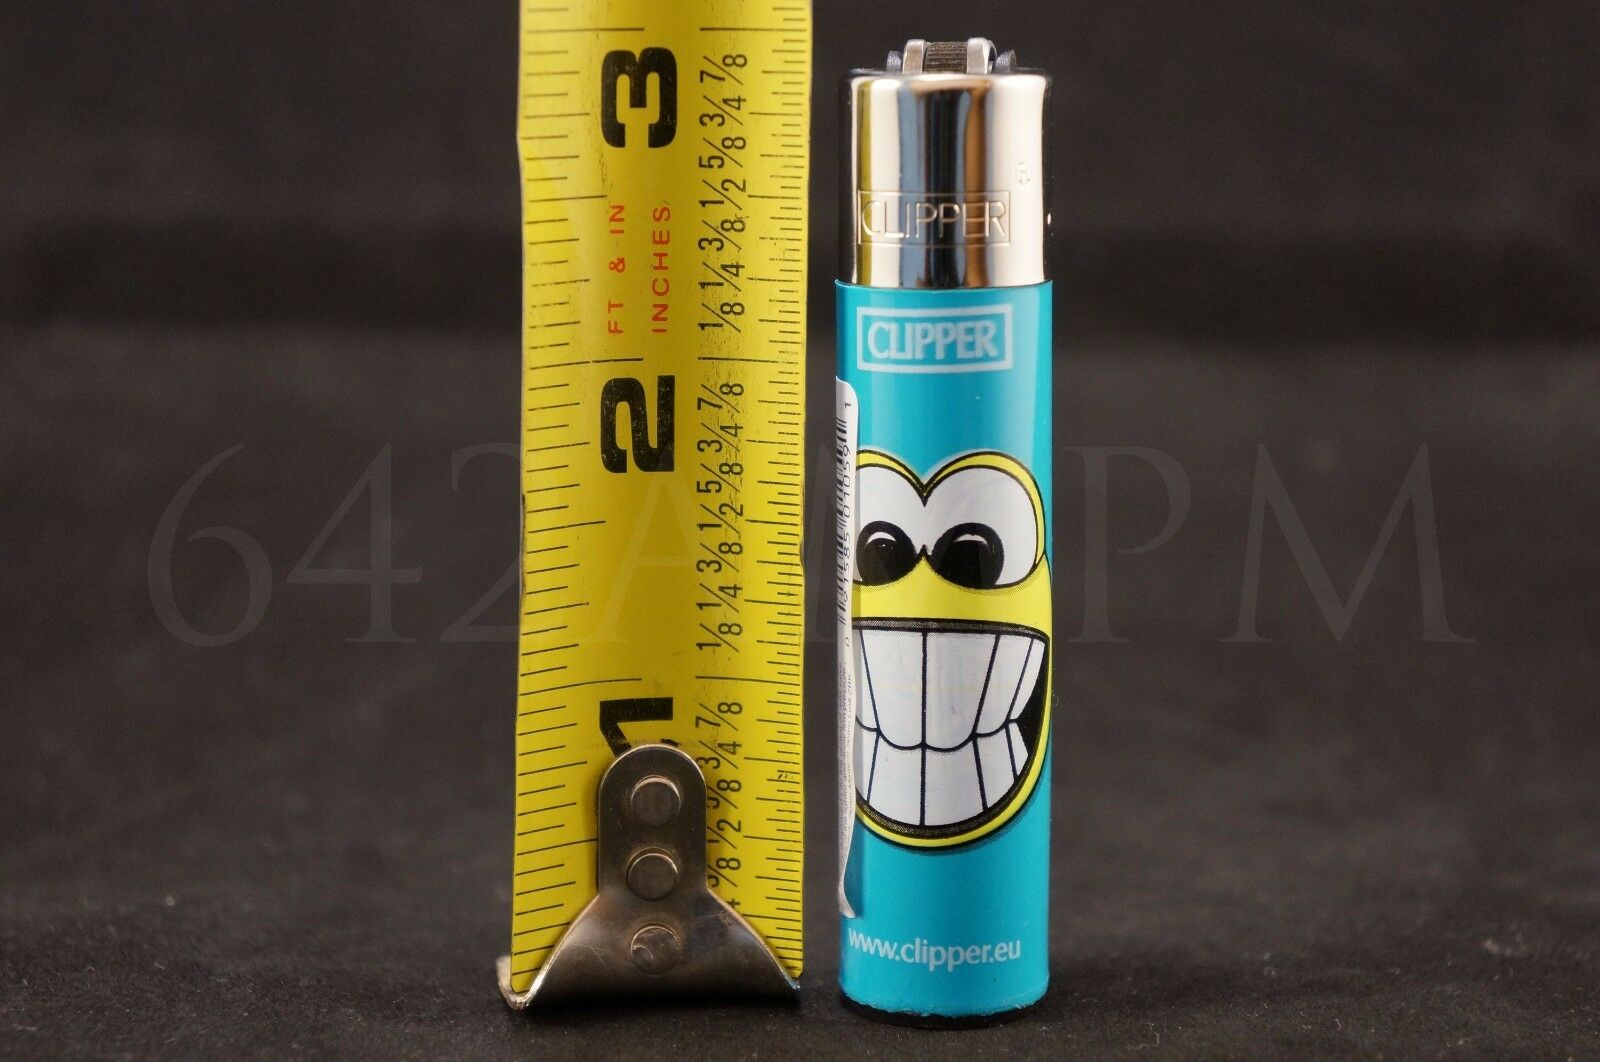 4 pcs New Refillable Clipper Full Size Lighters Mary Jane